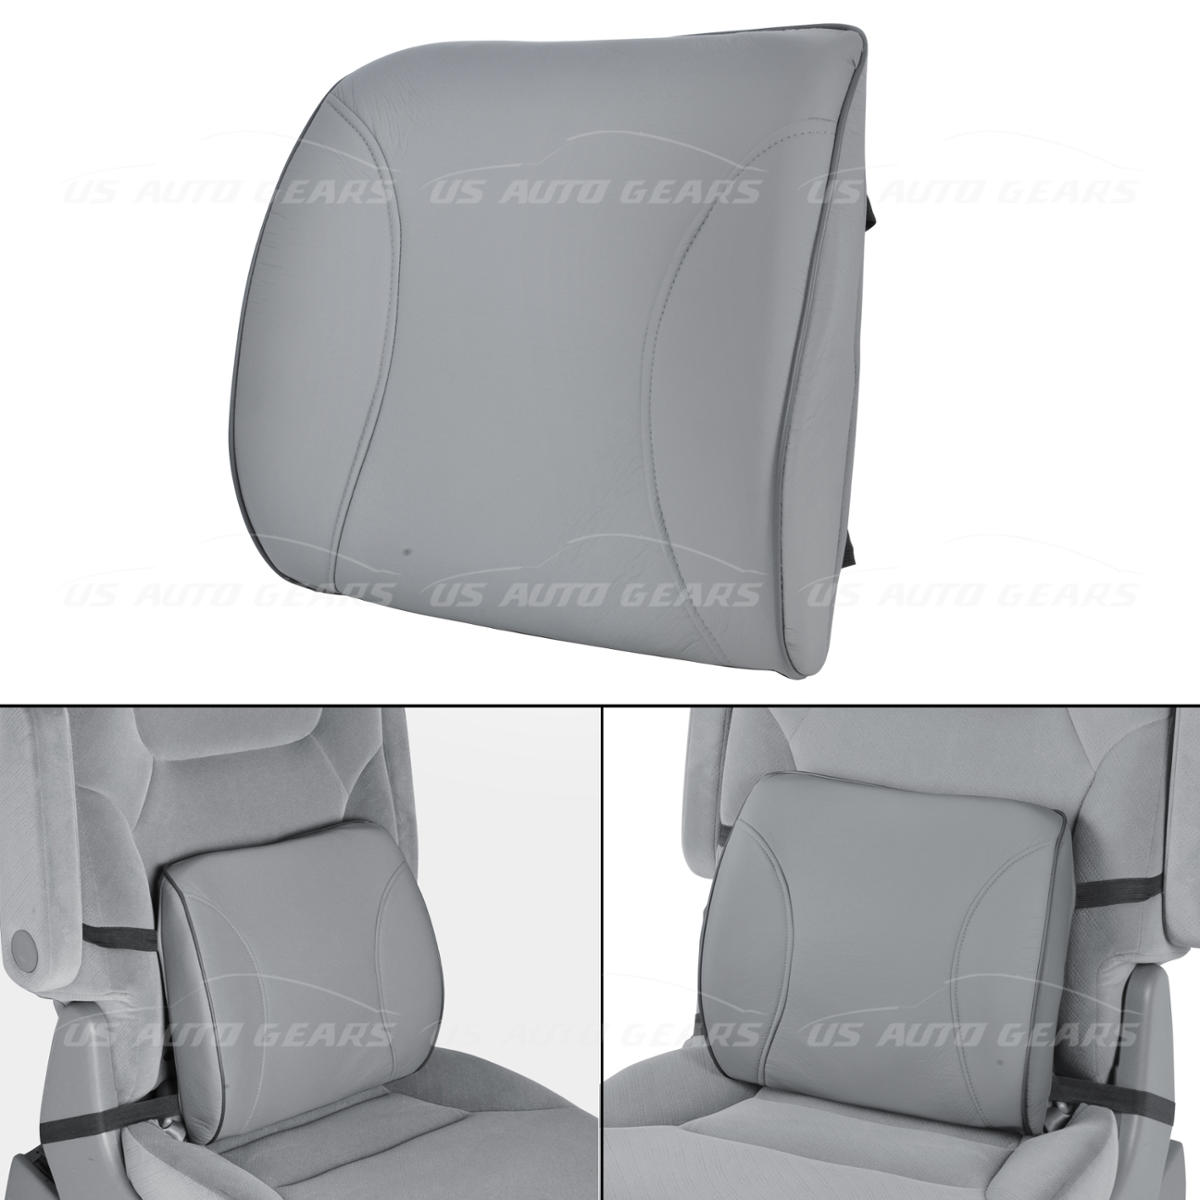 Gray Leather Memory Foam Lumbar Cushion Support Strap Car